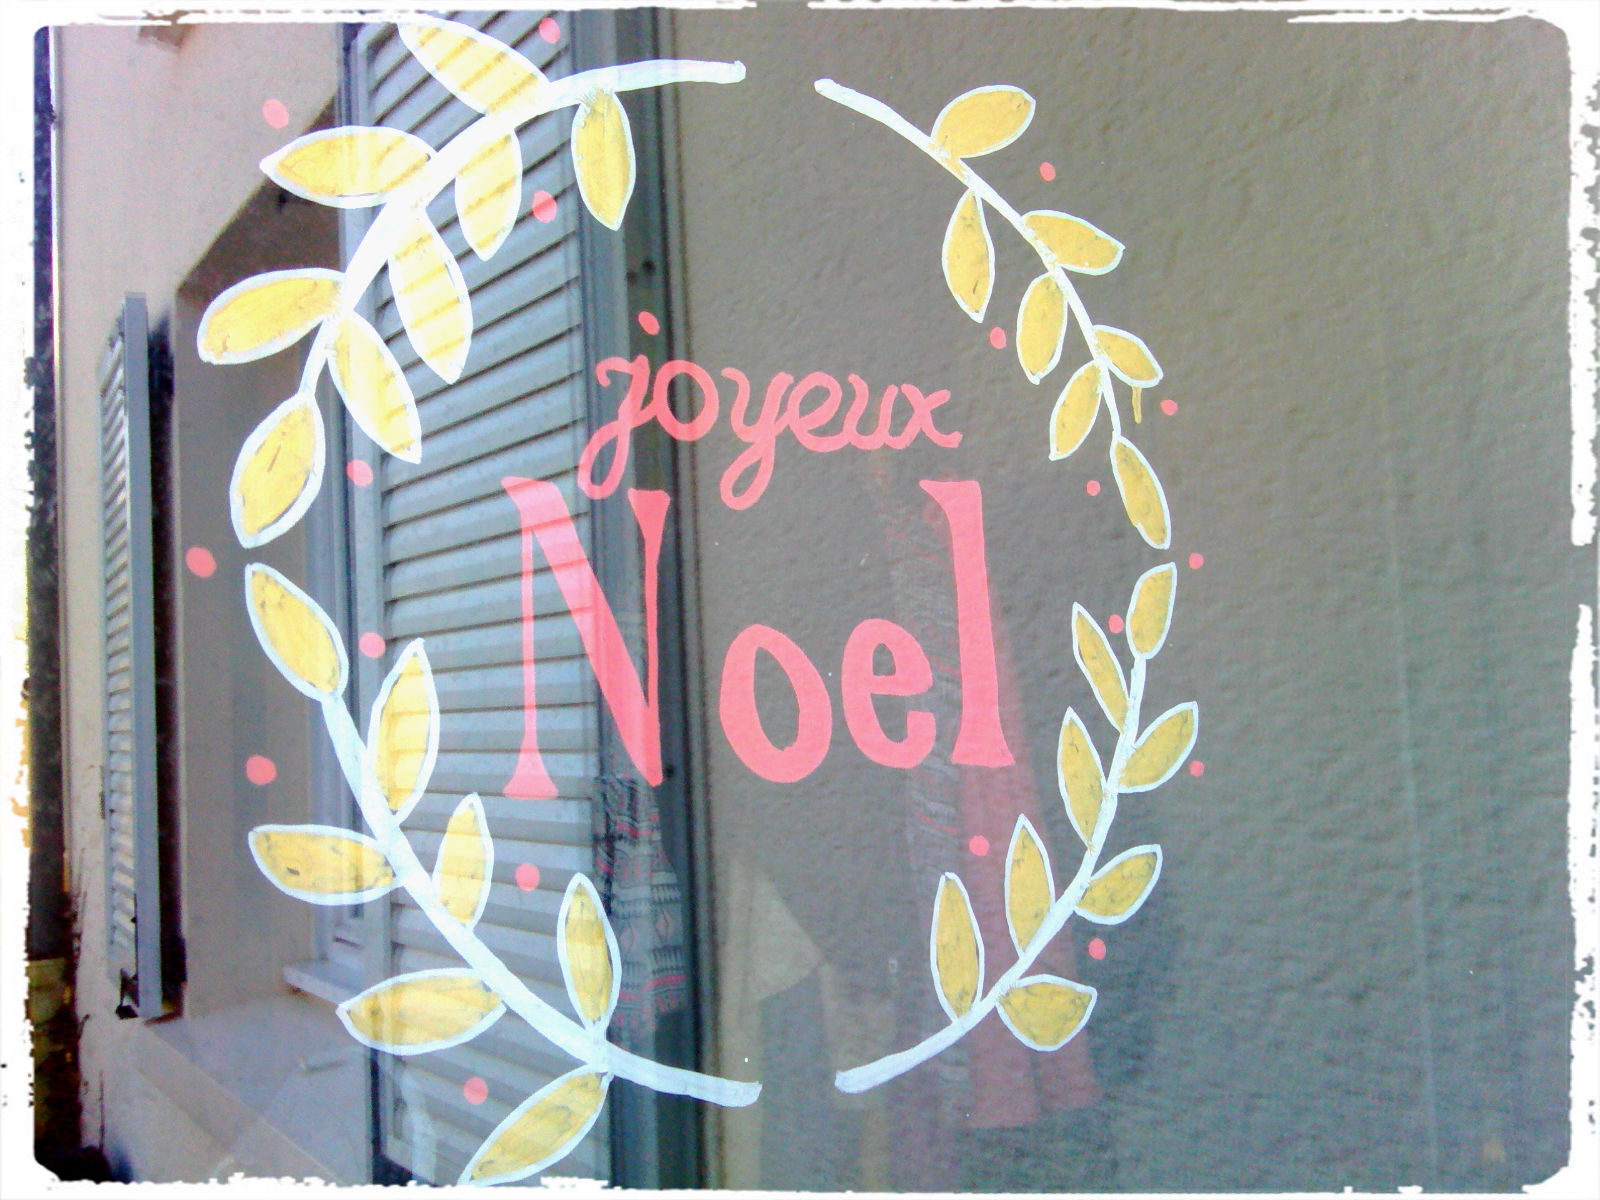 D corations de fen tre pour no l mes humeurs cr atives for Decoration fenetre posca